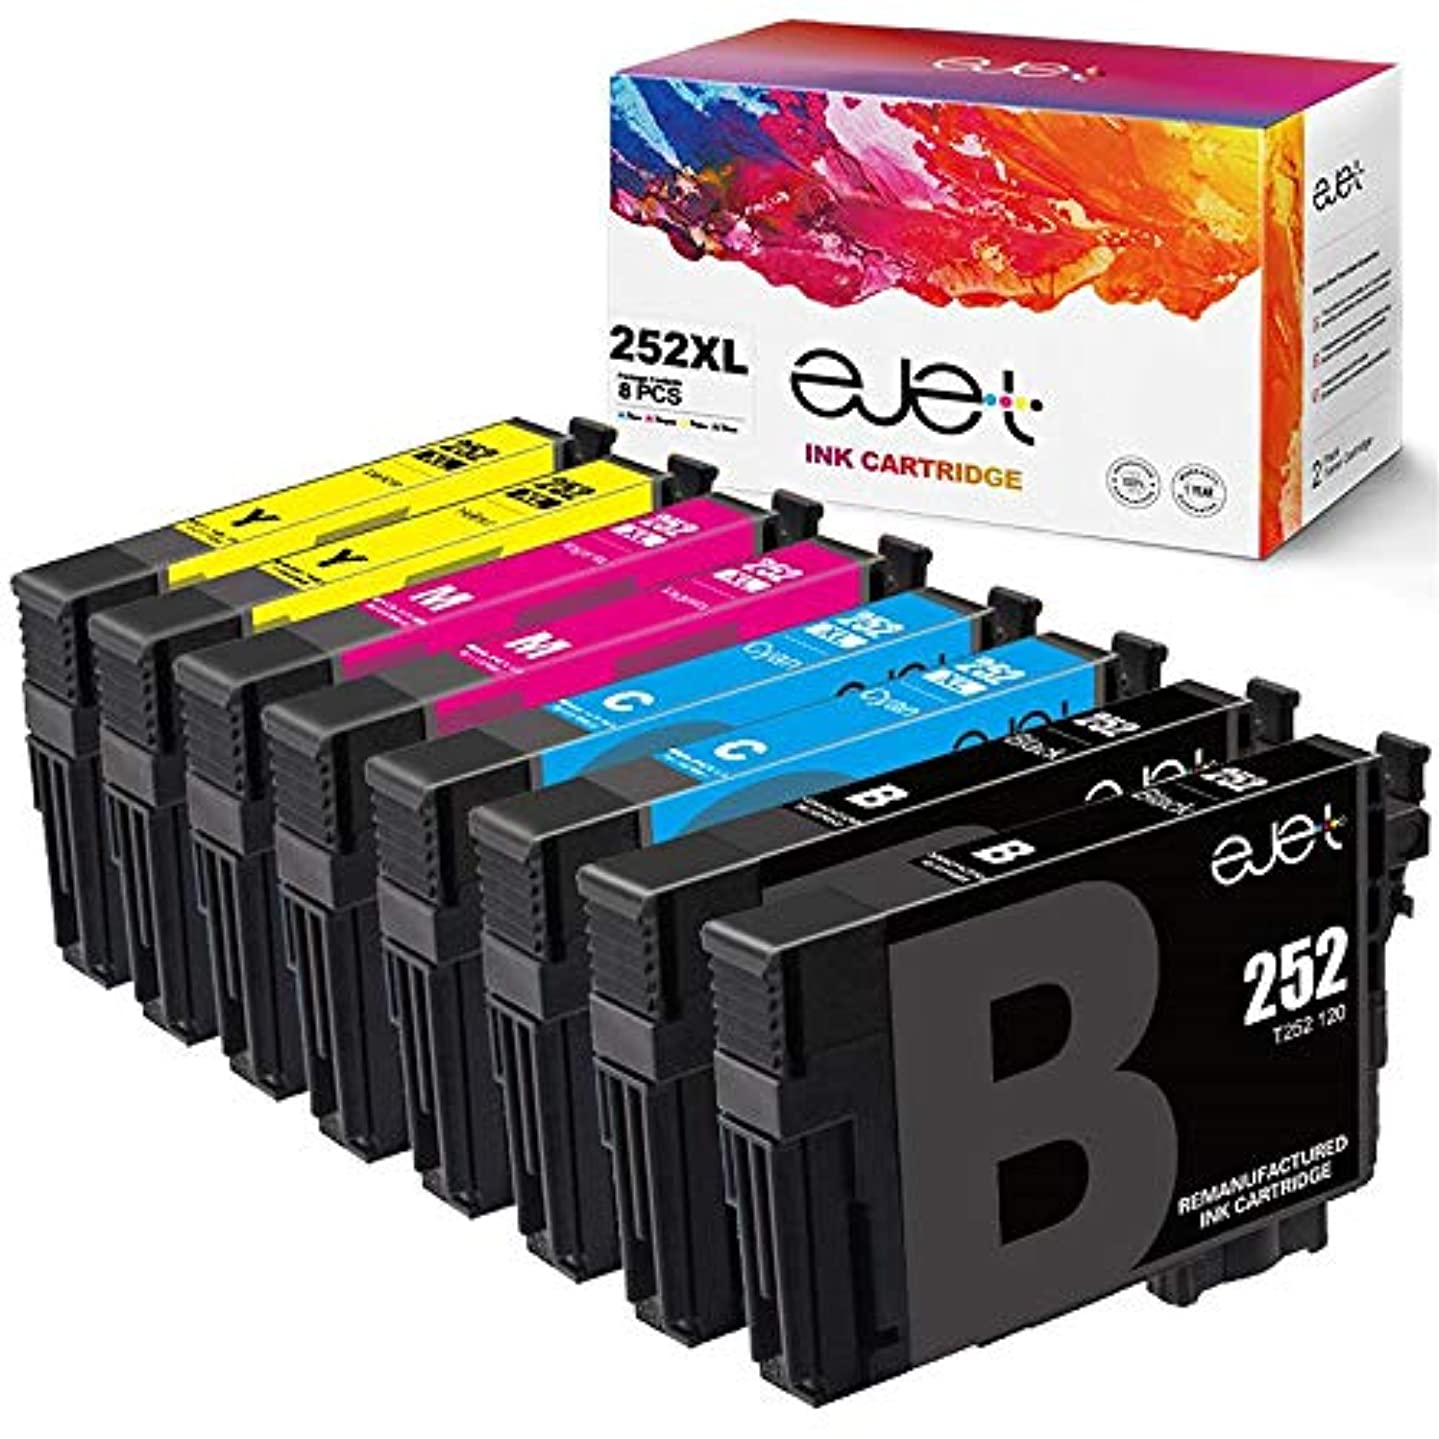 ejet Remanufactured Ink Cartridge Replacement for Epson 252XL 252 to use with Workforce WF-7710 WF-7720 WF-3620 WF-3640 WF-7610 WF-7620 WF-3630 Printer (2 Black, 2 Cyan, 2 Magenta, 2 Yellow) 8 Pack